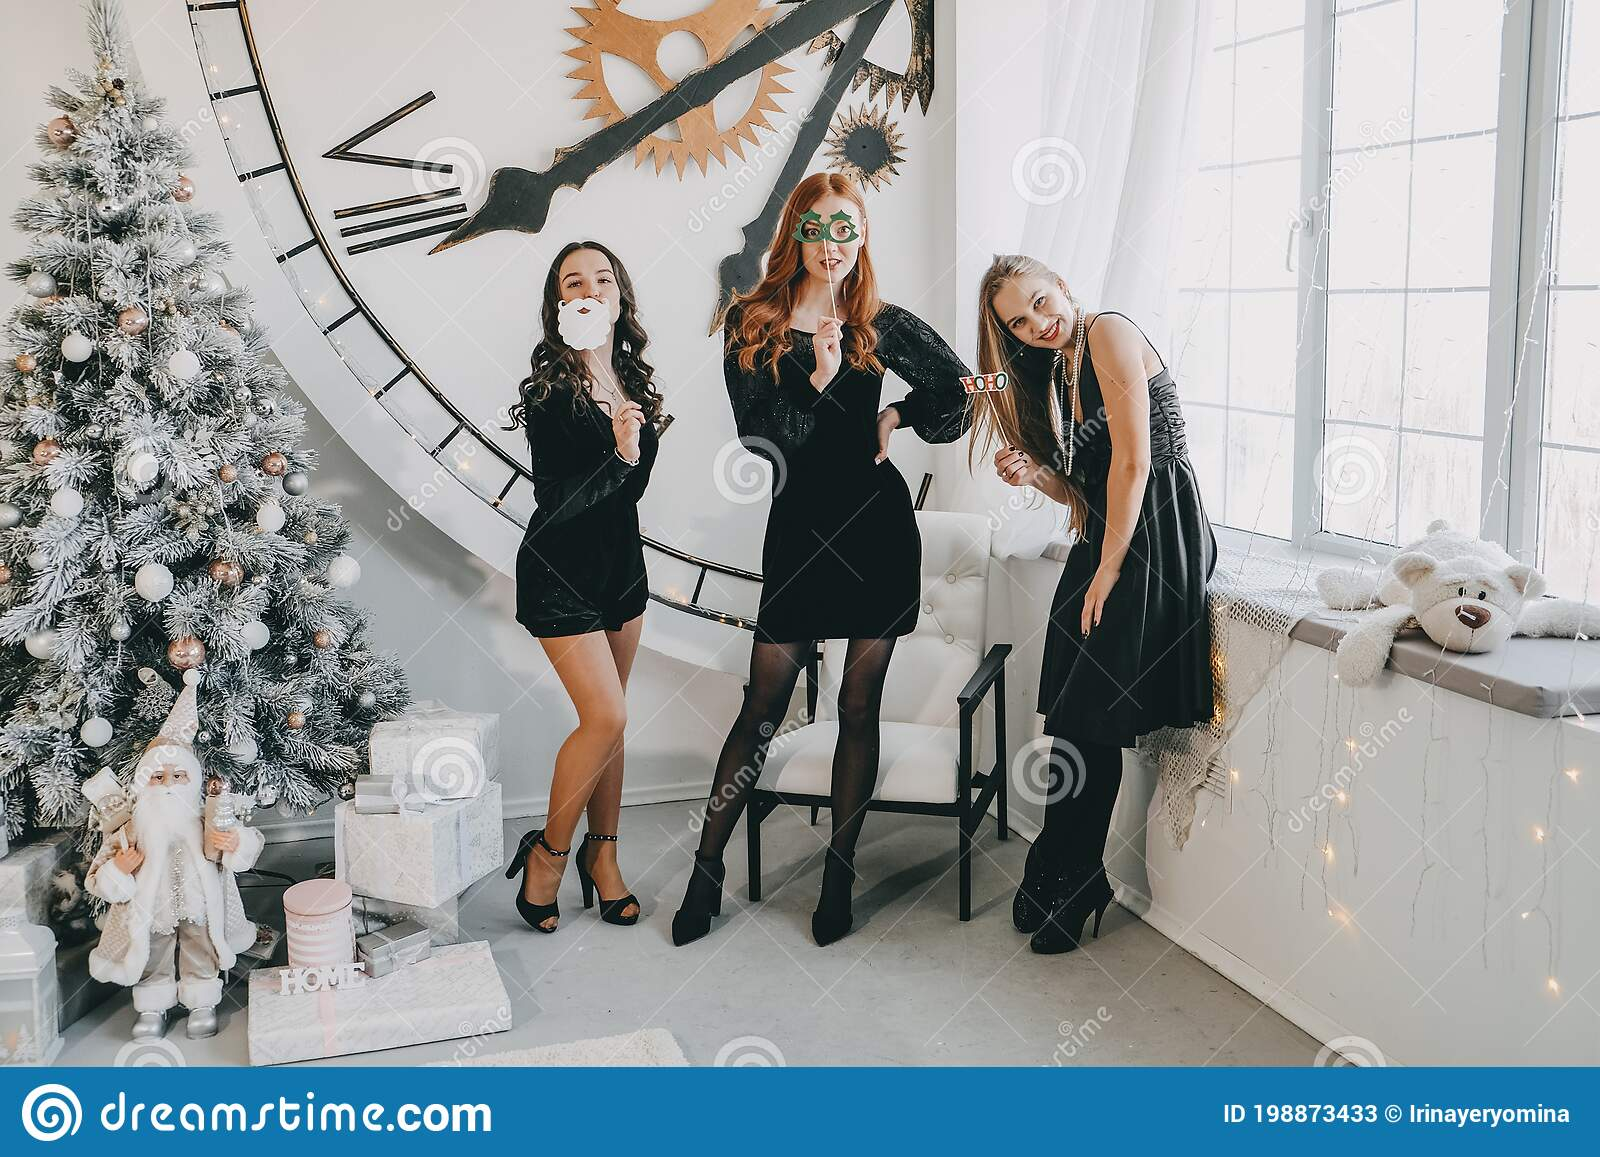 Christmas Ideas On Lockdown Christmas Celebration New Year Eve Party Festive Family Get Togethers And Parties Three Stock Image Image Of Dresses Group 198873433